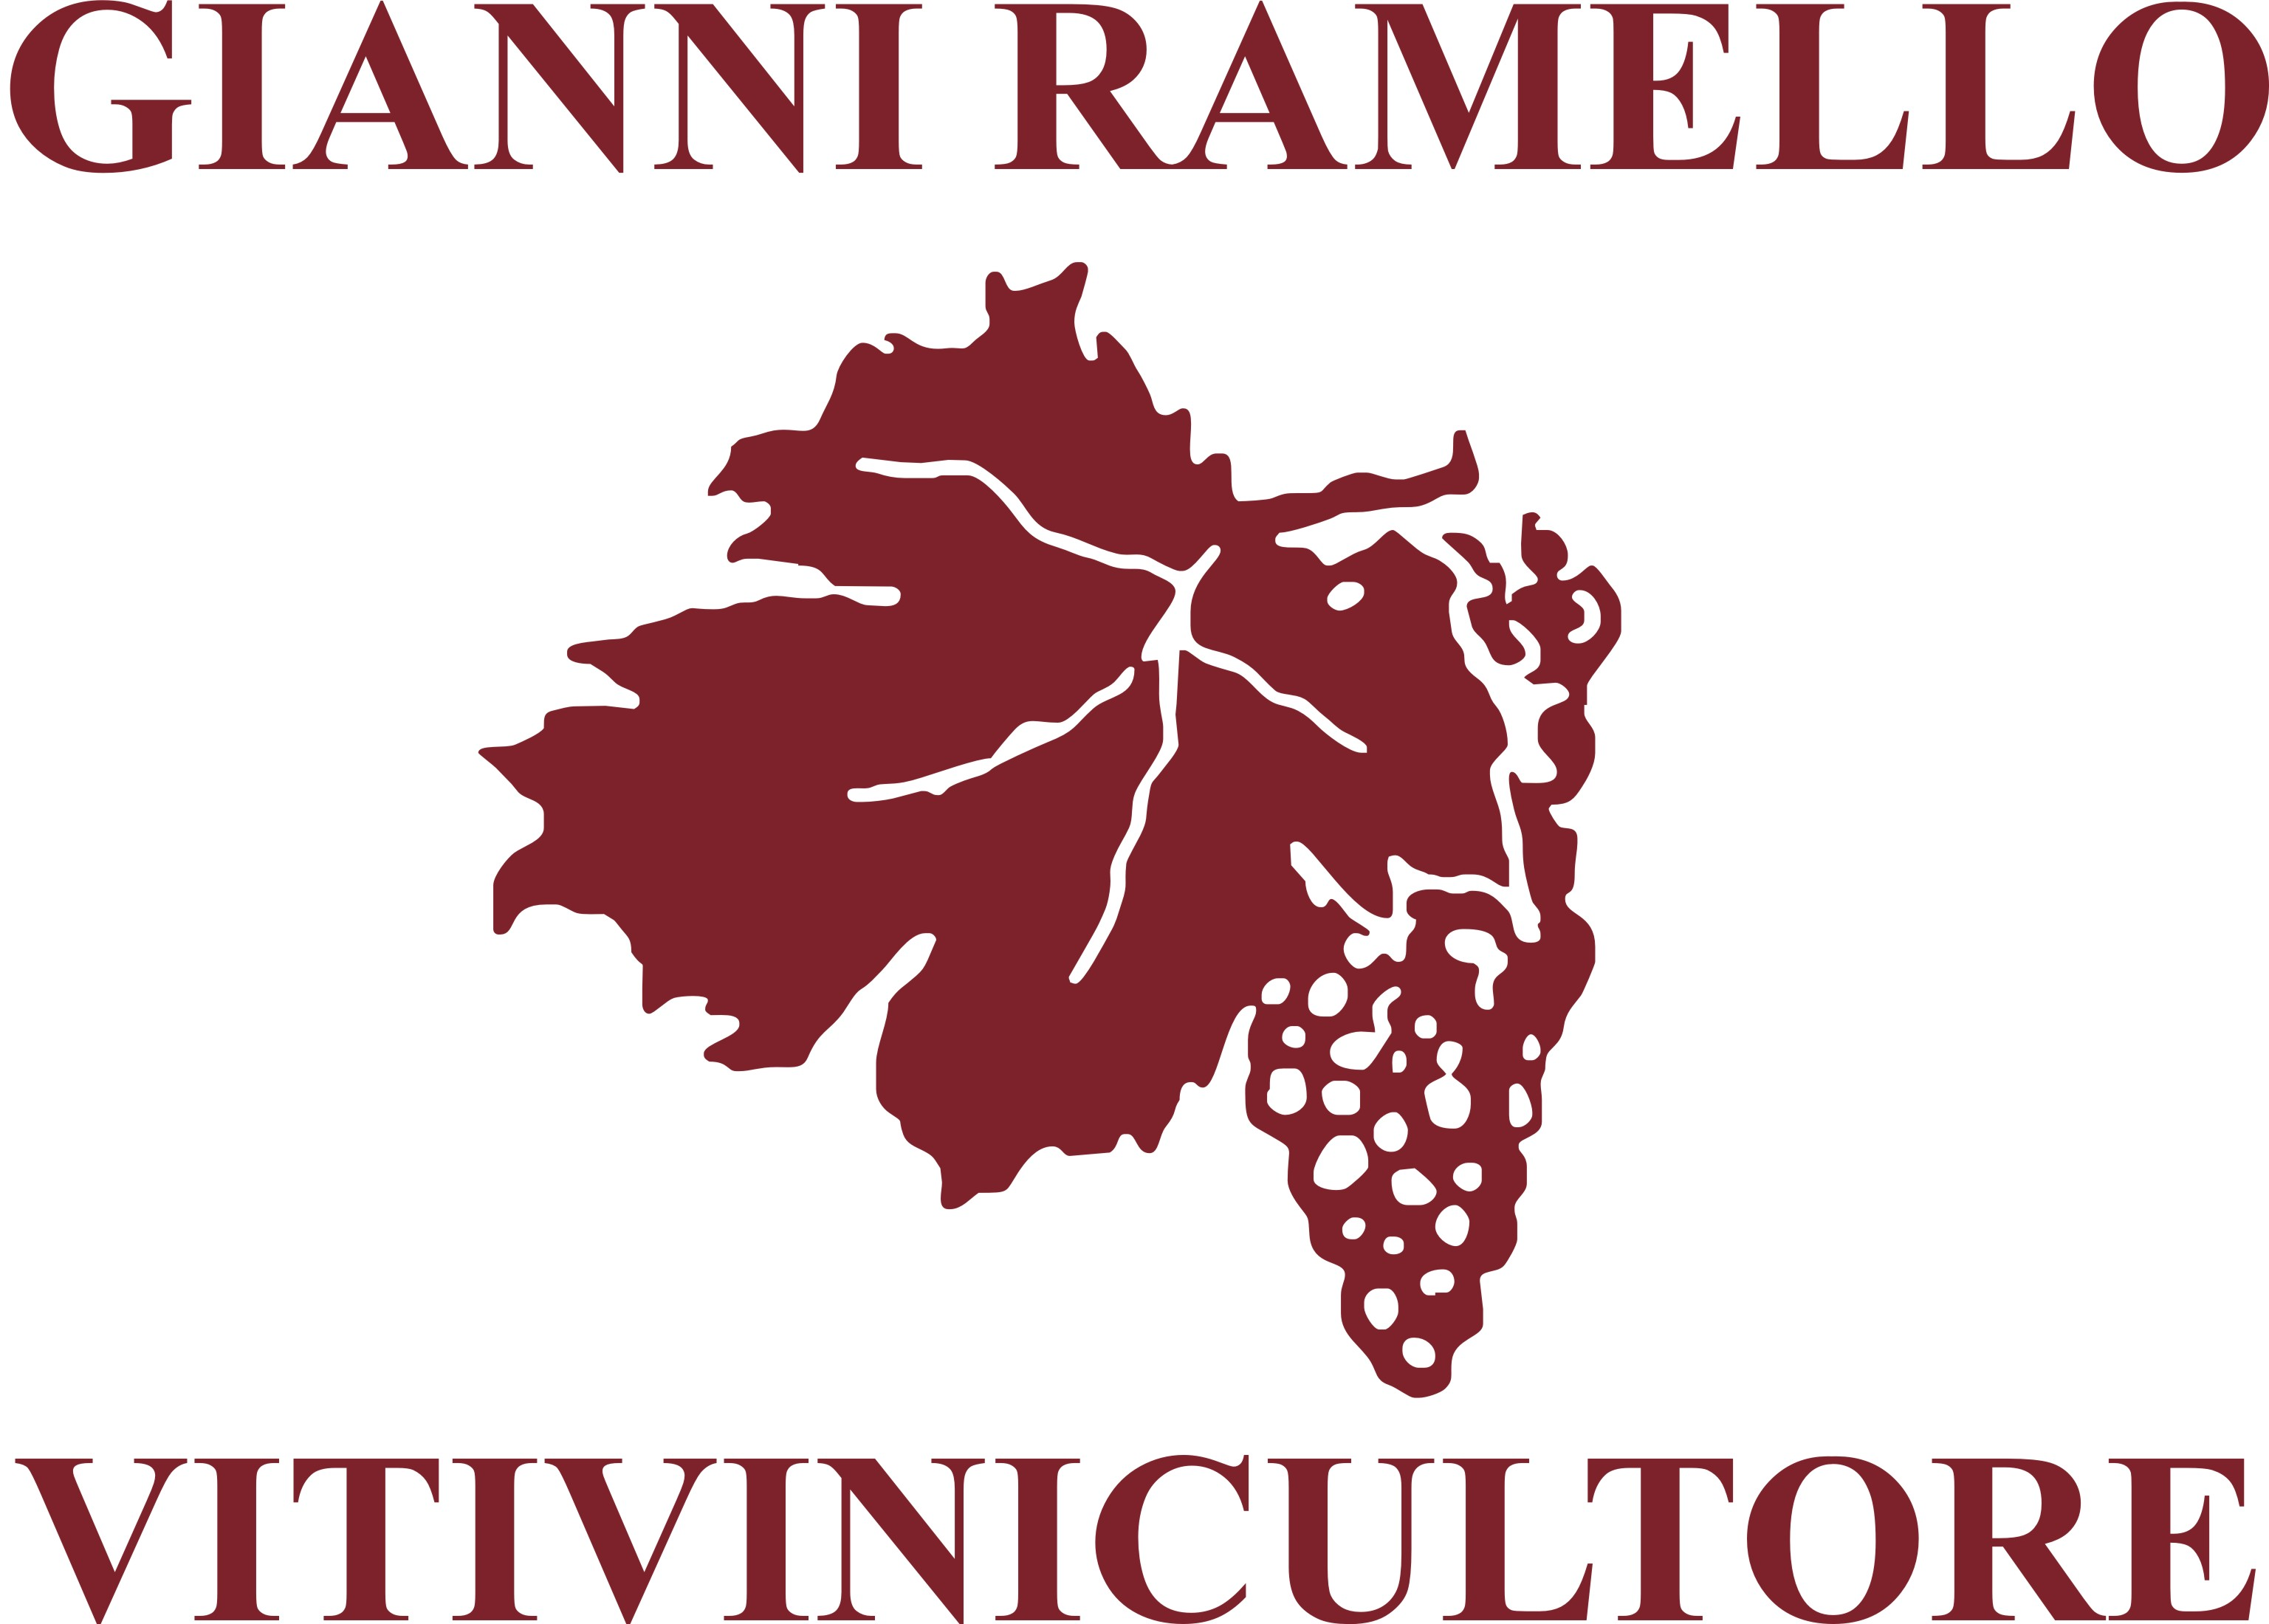 GIANNI RAMELLO